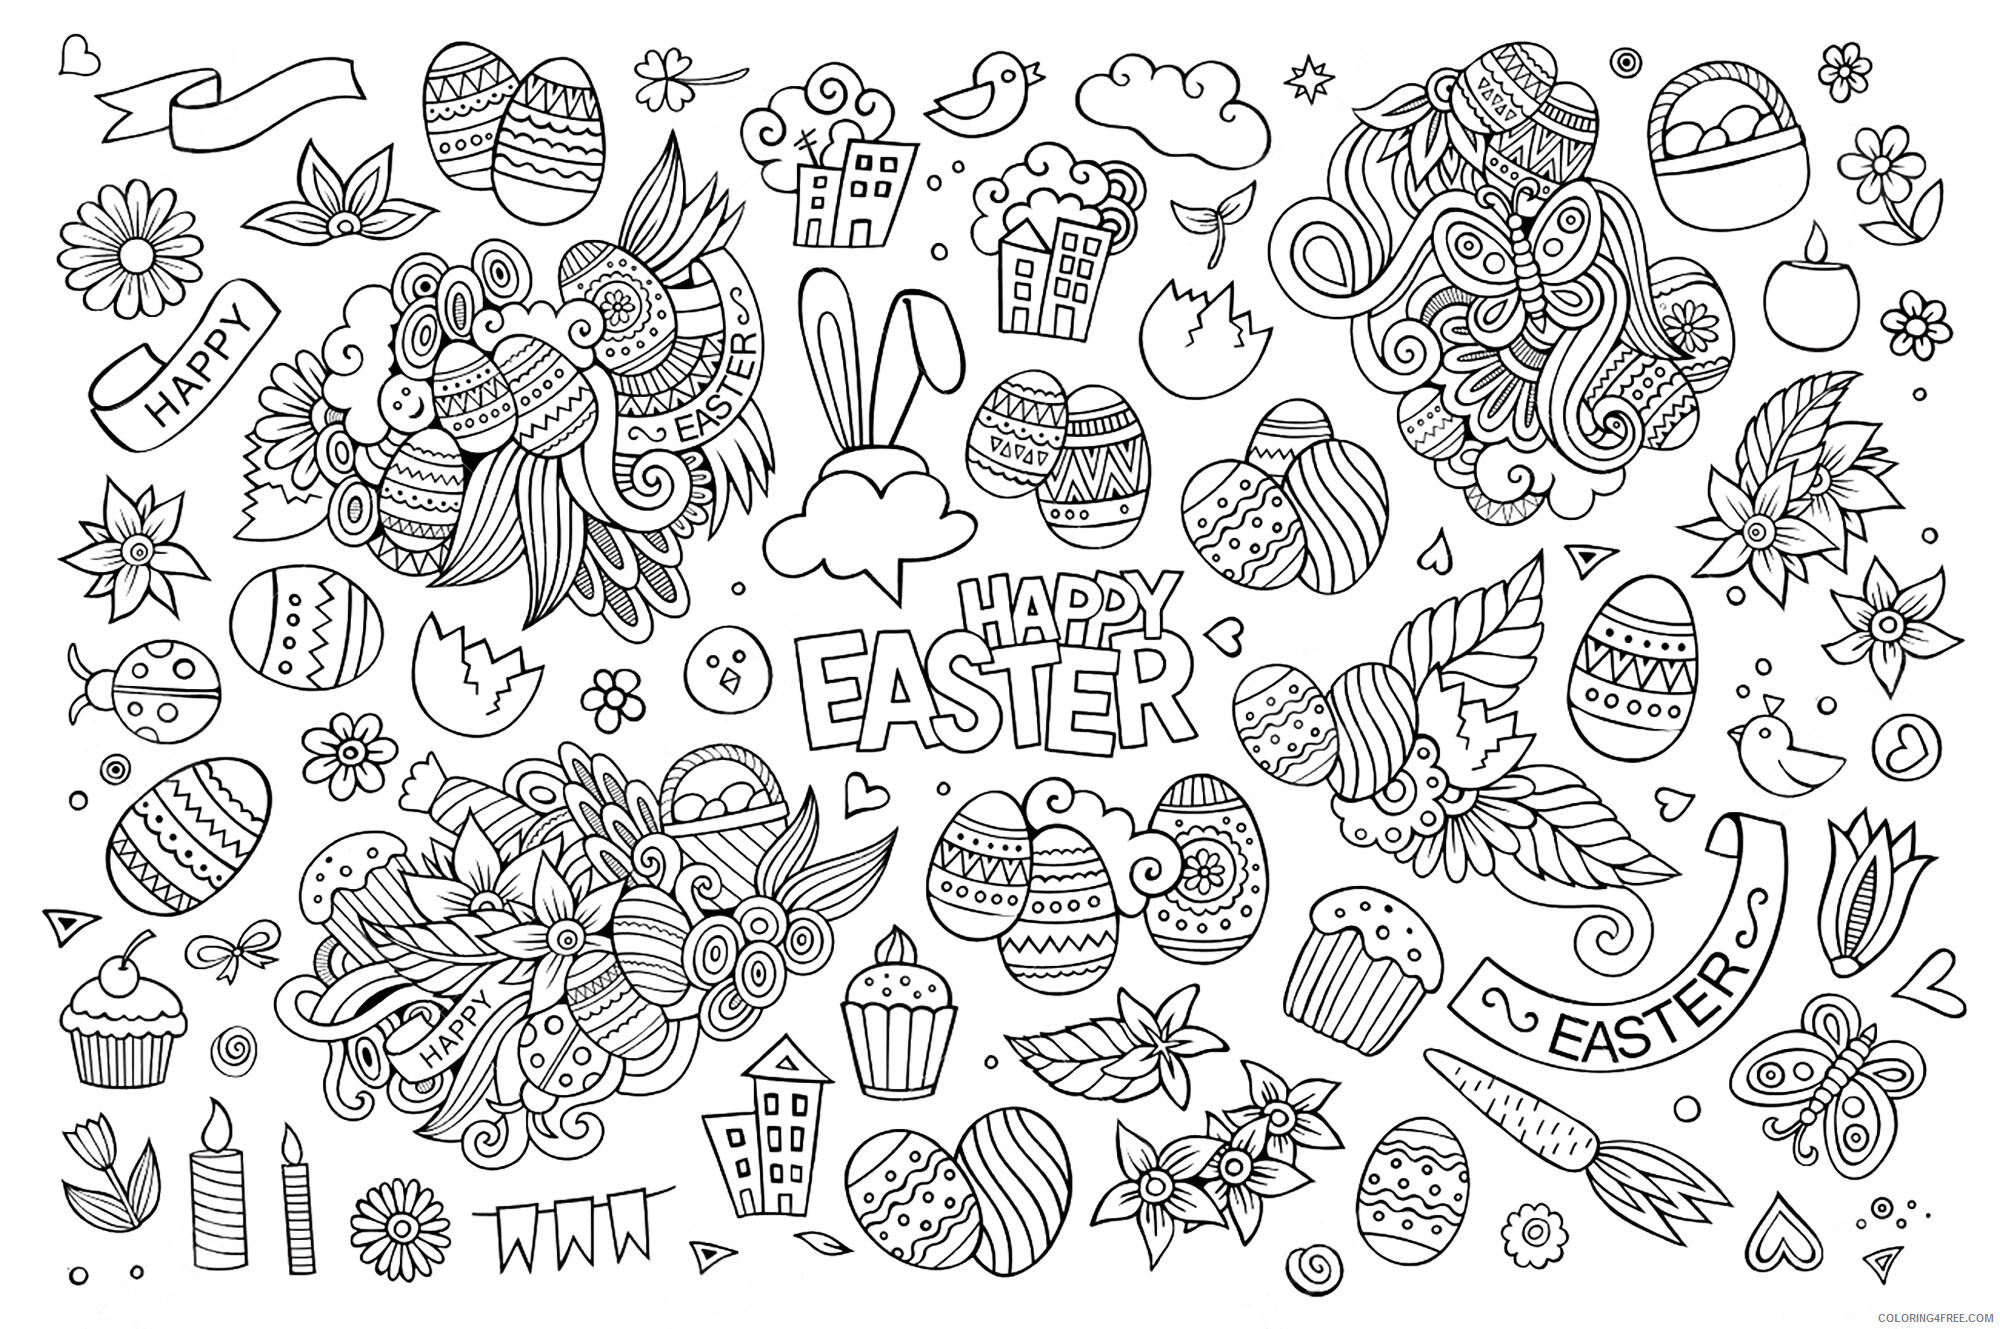 Doodle Coloring Pages Adult Easter Doodle for Adults Printable 2020 354 Coloring4free